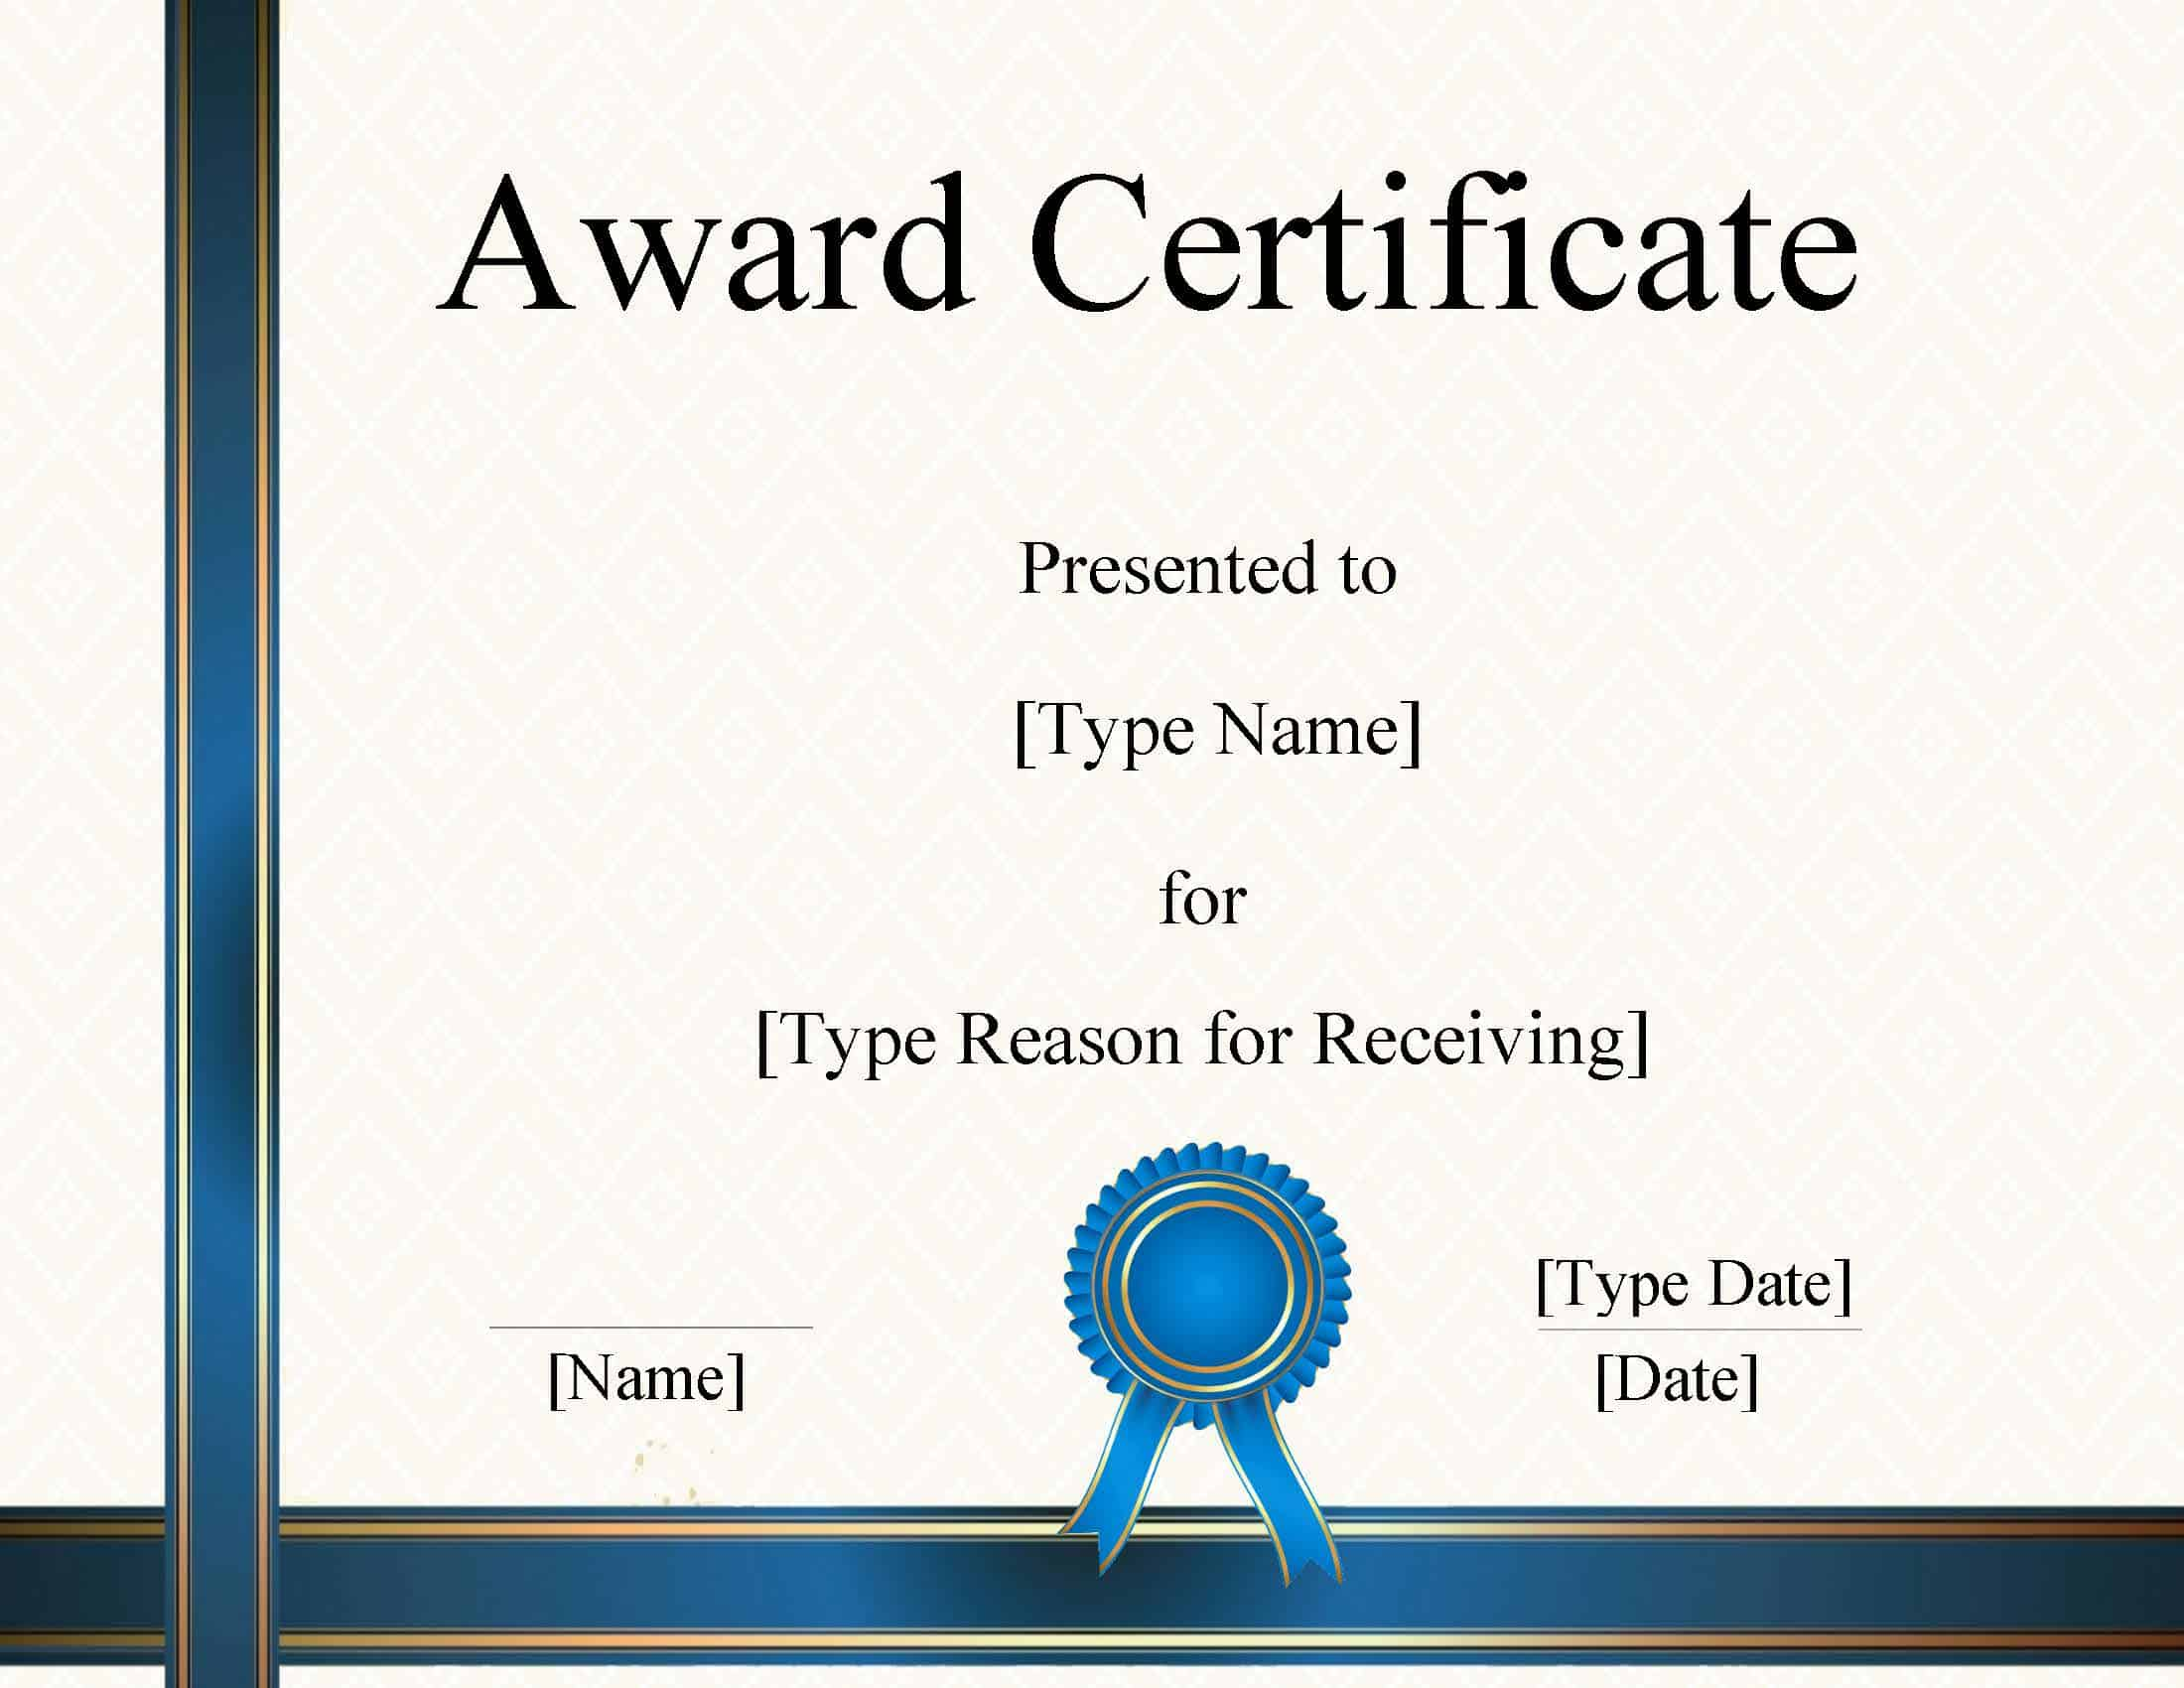 FREE Certificate Template Word  Instant Download Inside Award Certificate Design Template